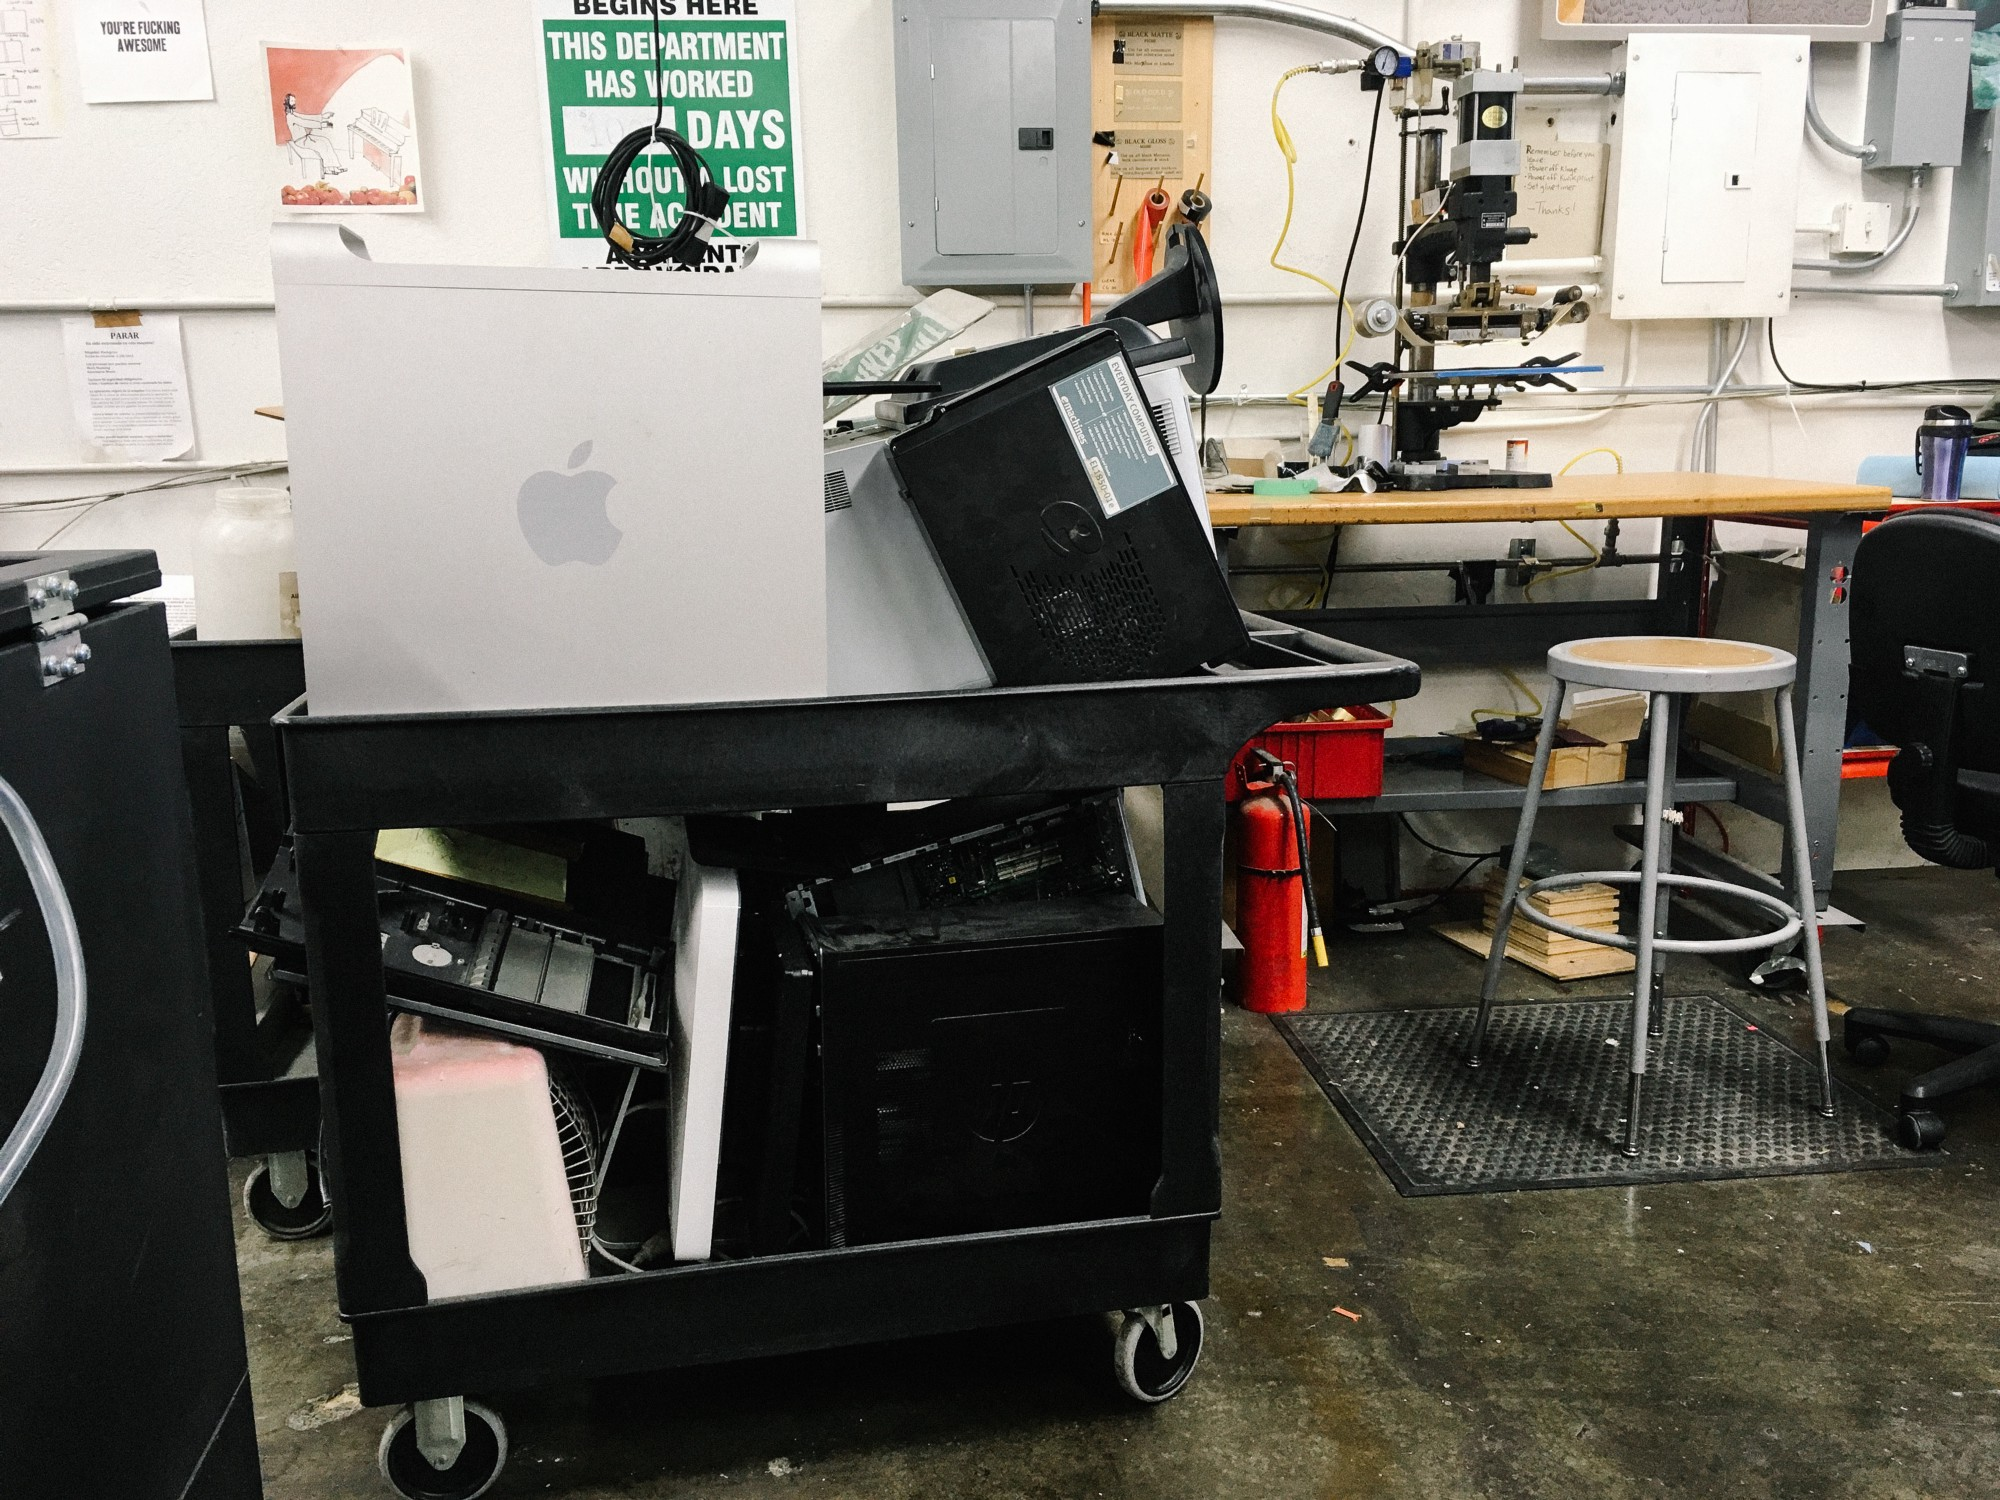 Building Root Ventures Retro Power Mac G5 Hackintosh Supply Connector Dell Laptop Pinout Dumpster Diving Jackpot